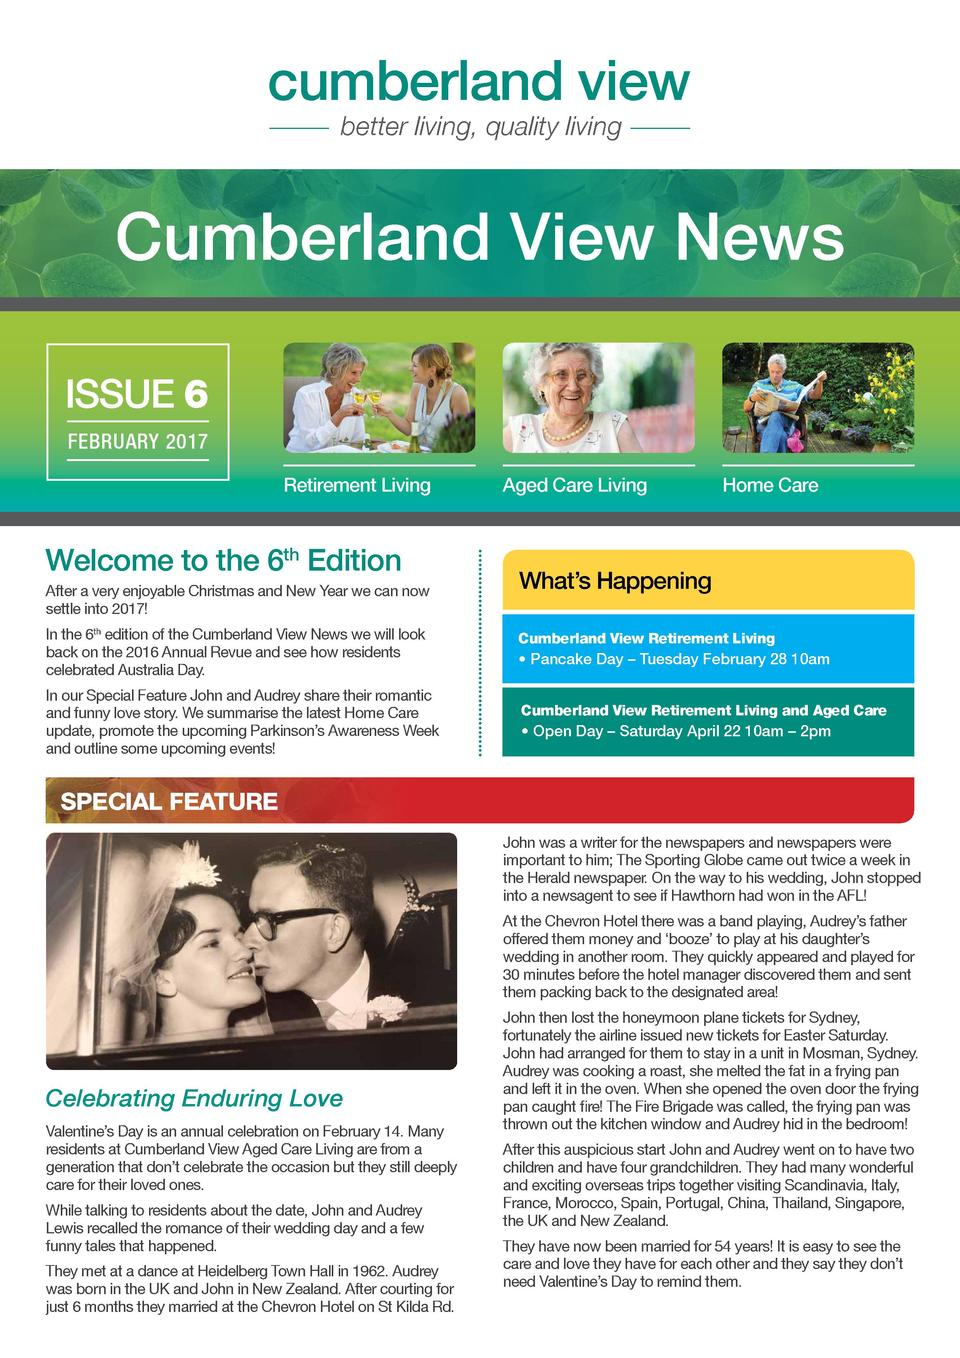 cumberland view better living, quality living  Cumberland View News ISSUE 6 FEBRUARY 2017 Retirement Living  Welcome to th...